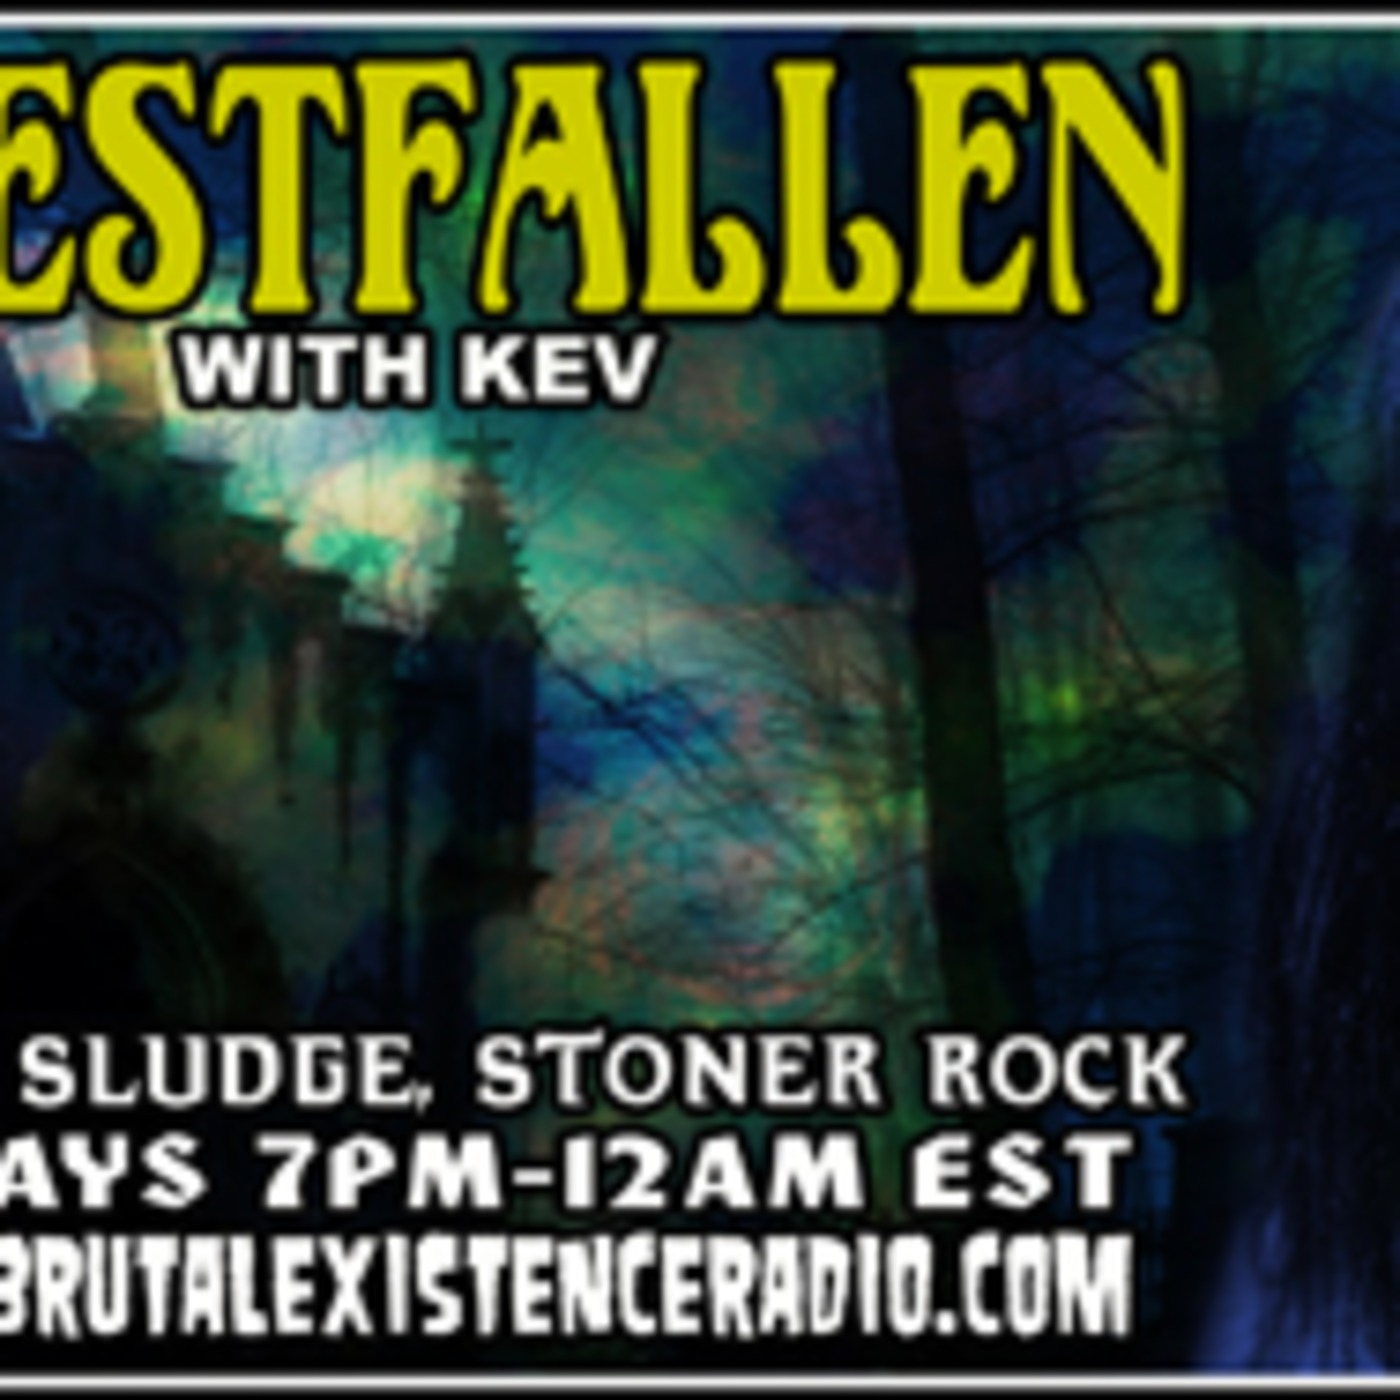 crestfallenradio's Podcast